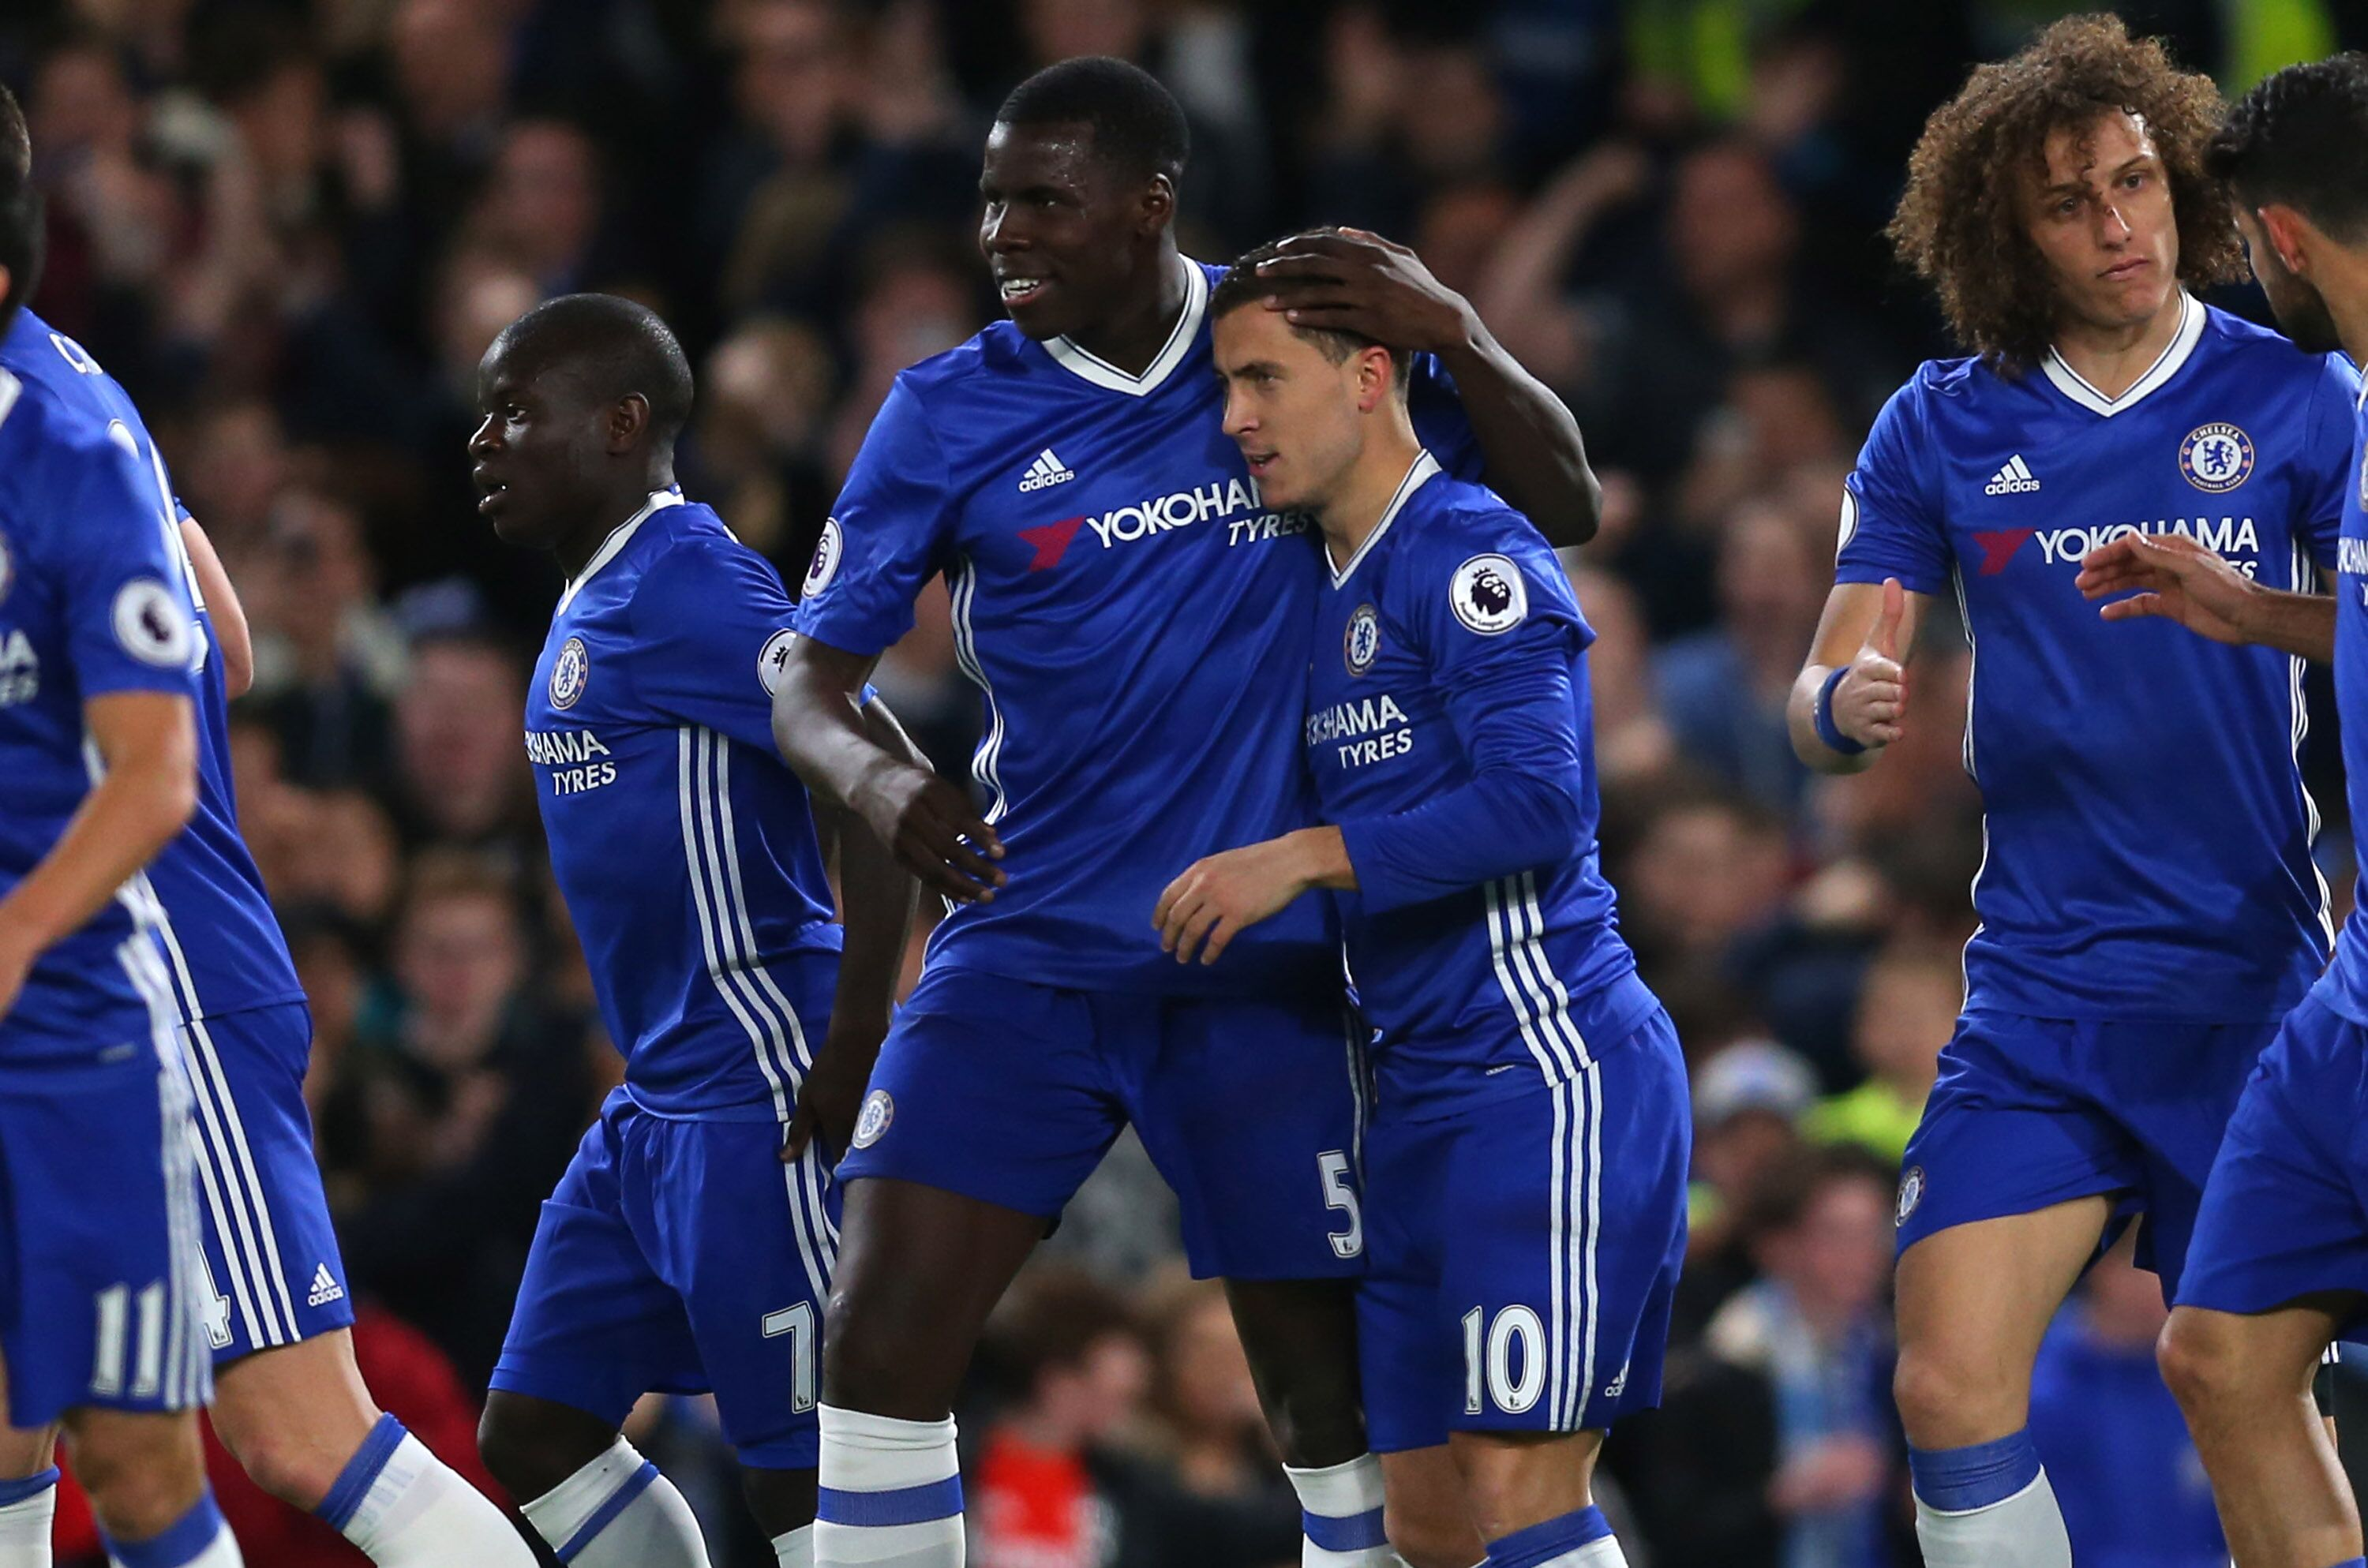 Streaming Chelsea Vs Manchester City: Chelsea Vs. Tottenham Live Stream: Watch FA Cup Online